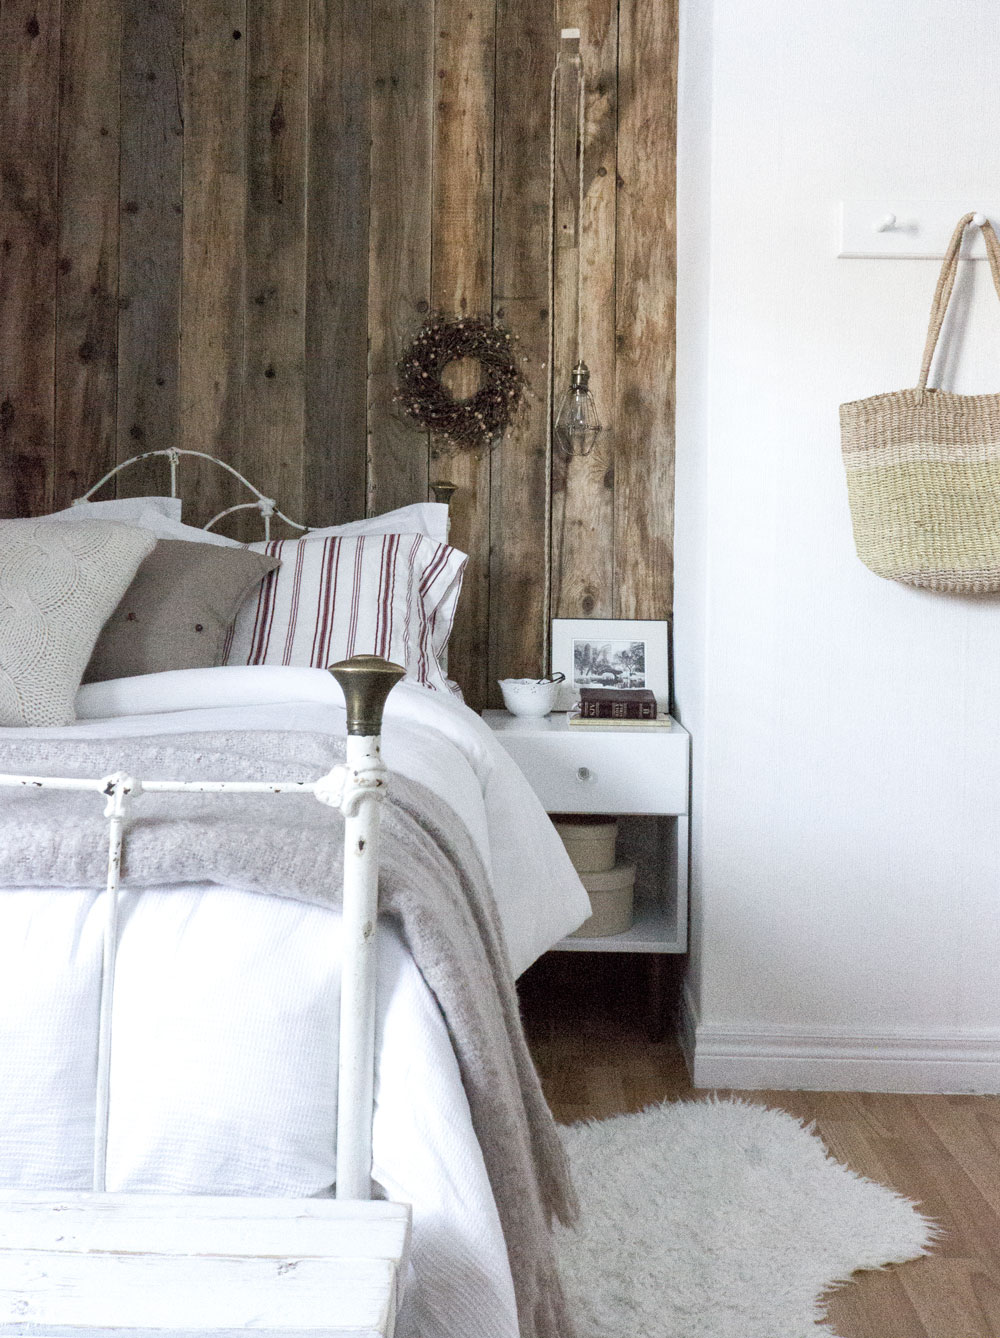 How to clean, prep and install reclaimed wood plank walls